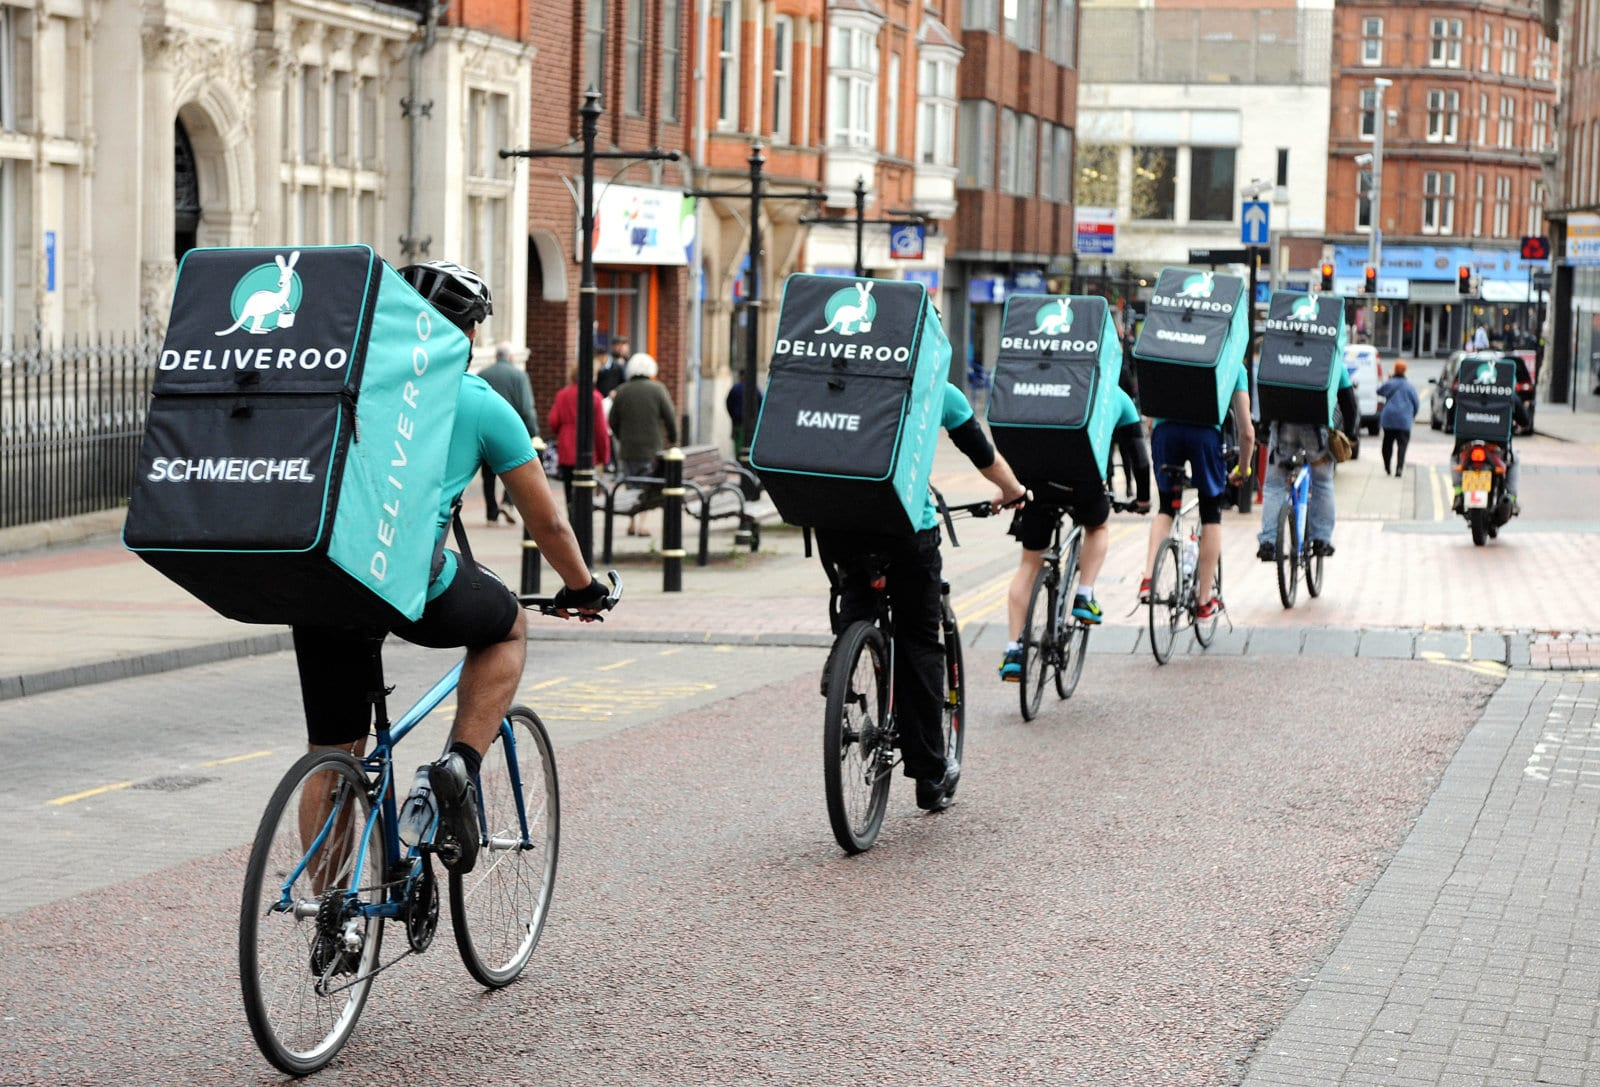 Deliveroo Riders Delivery